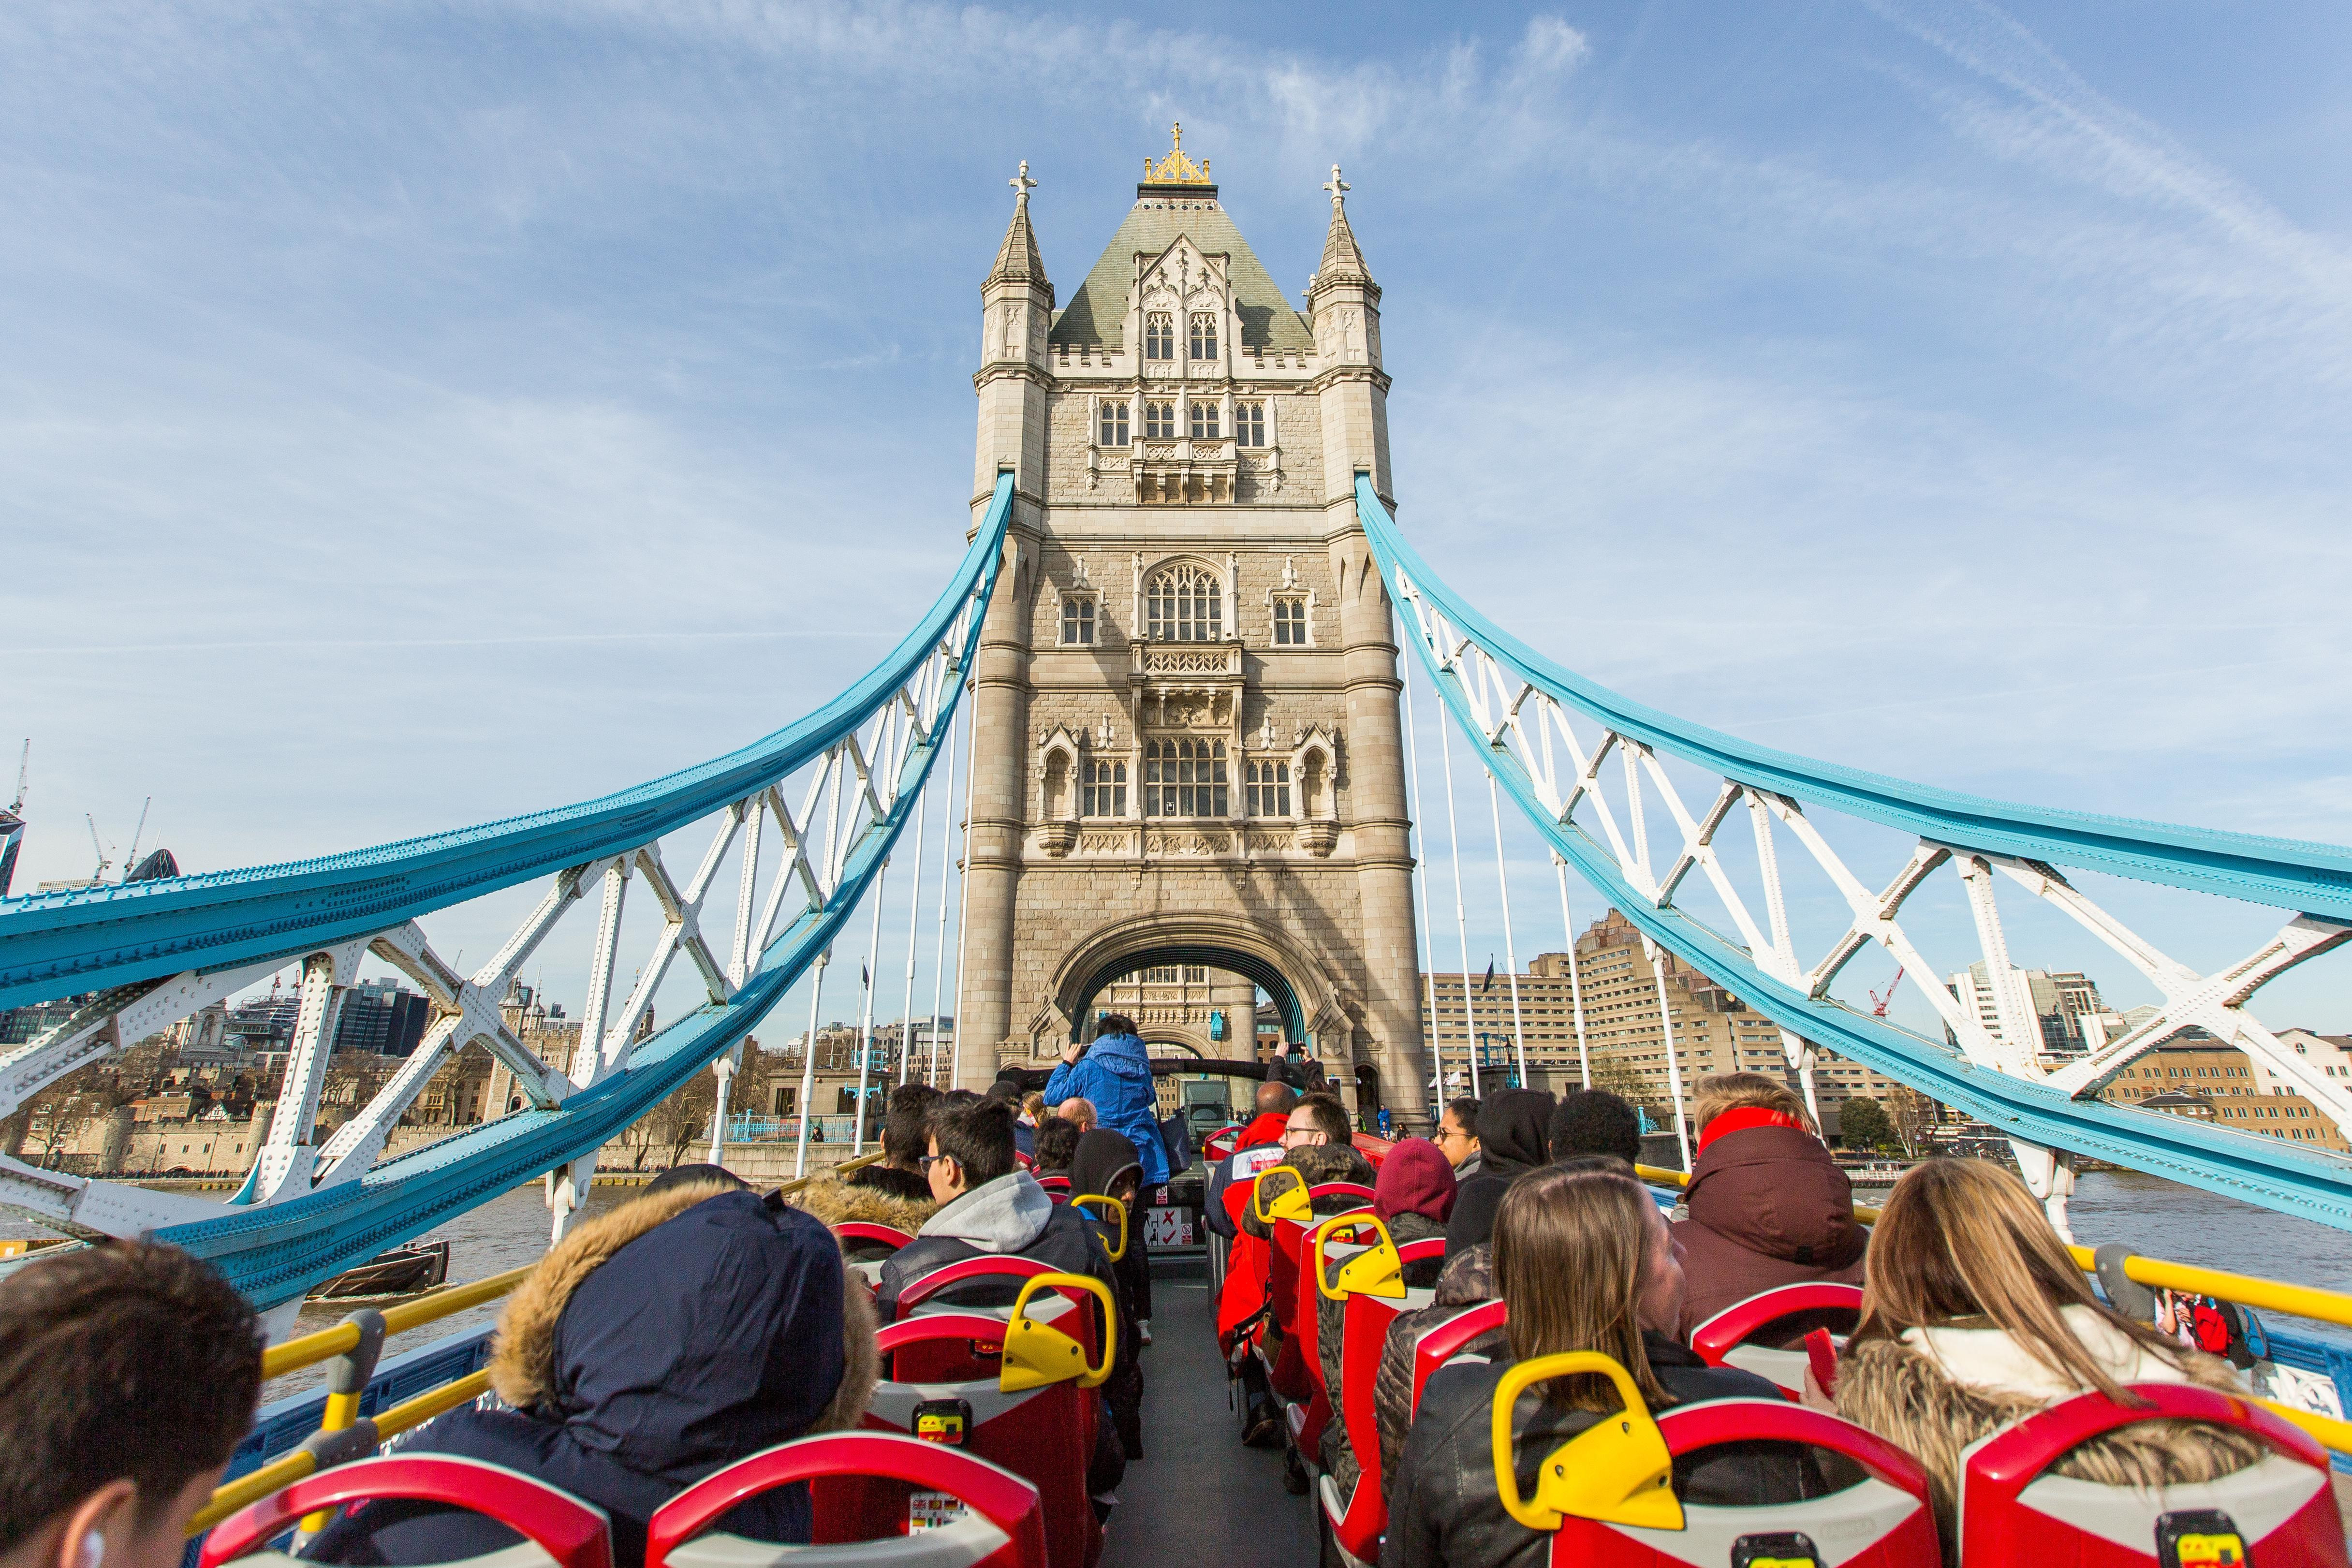 Sightseeing on a Budget in London